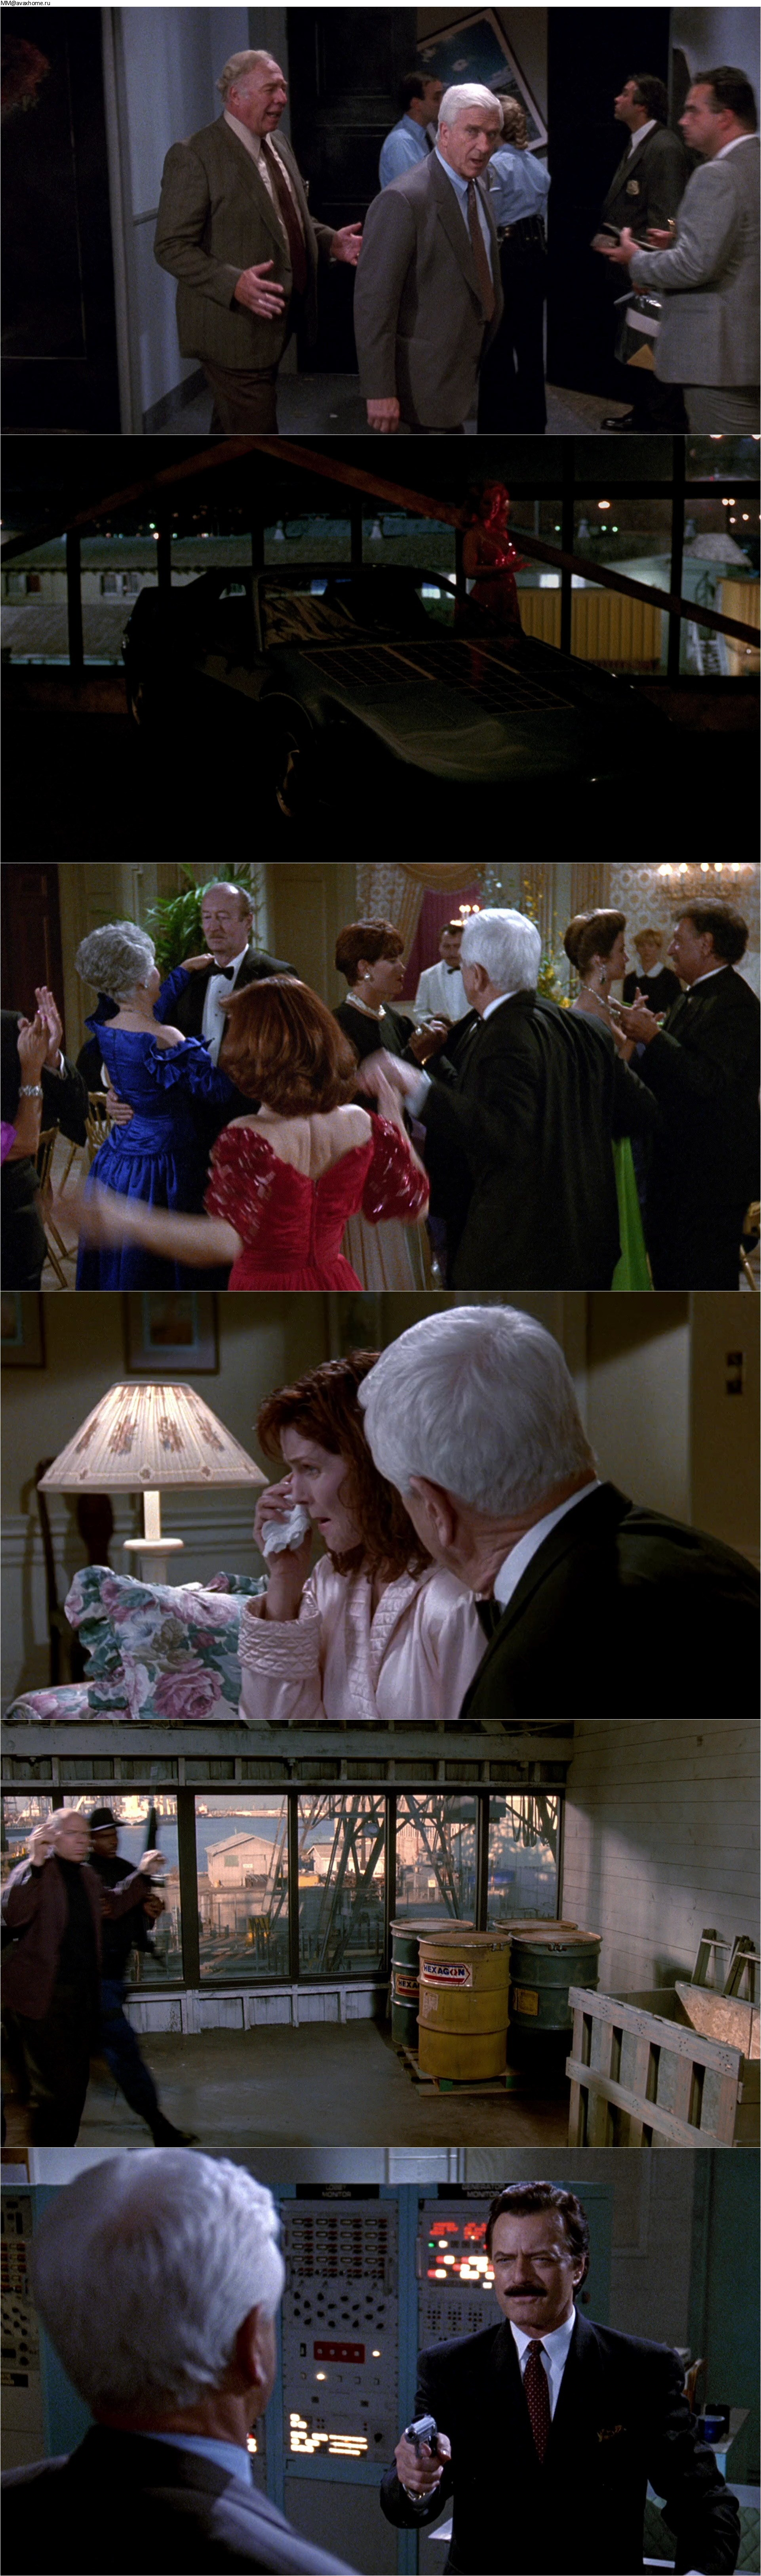 Watch The Naked Gun 2½: The Smell of Fear on Netflix Today